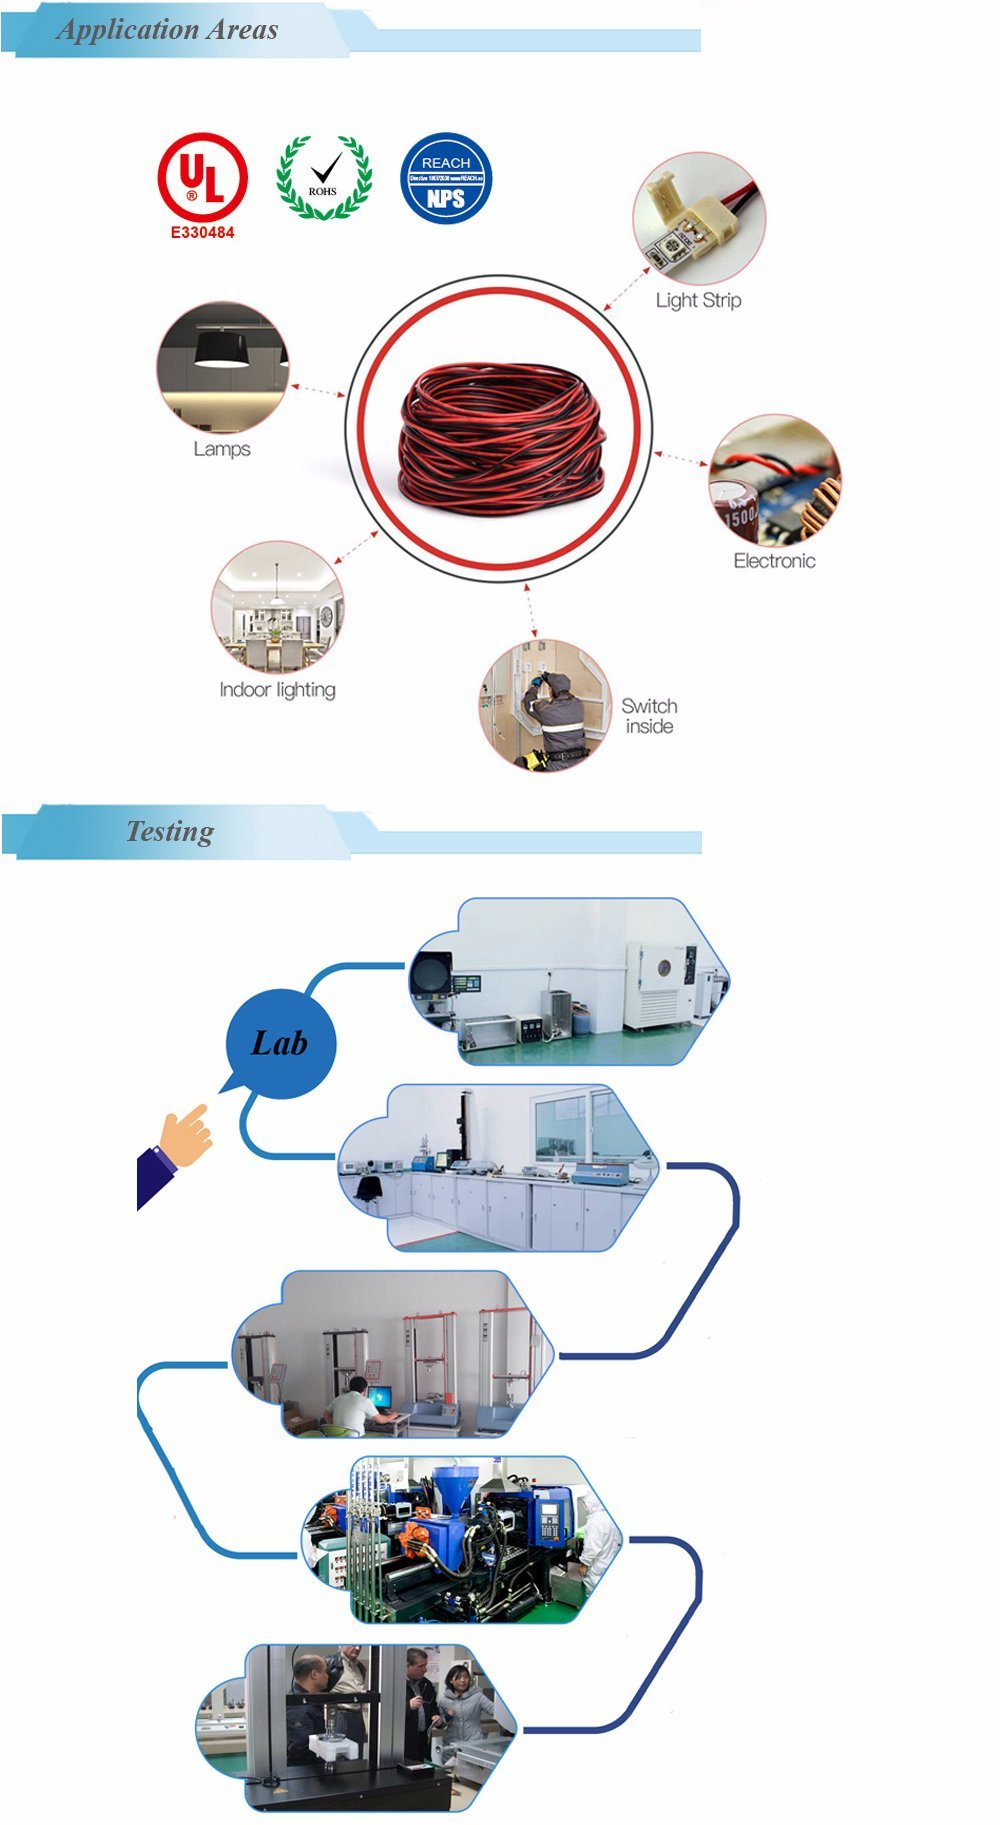 Tinned Copper Silicone Rubber House Wiring Electrical Cables And Items A1 We Can Provide The Existing Samples Free In Freight Collected If There Is Any Special Requirement Please Contact Us For More Details